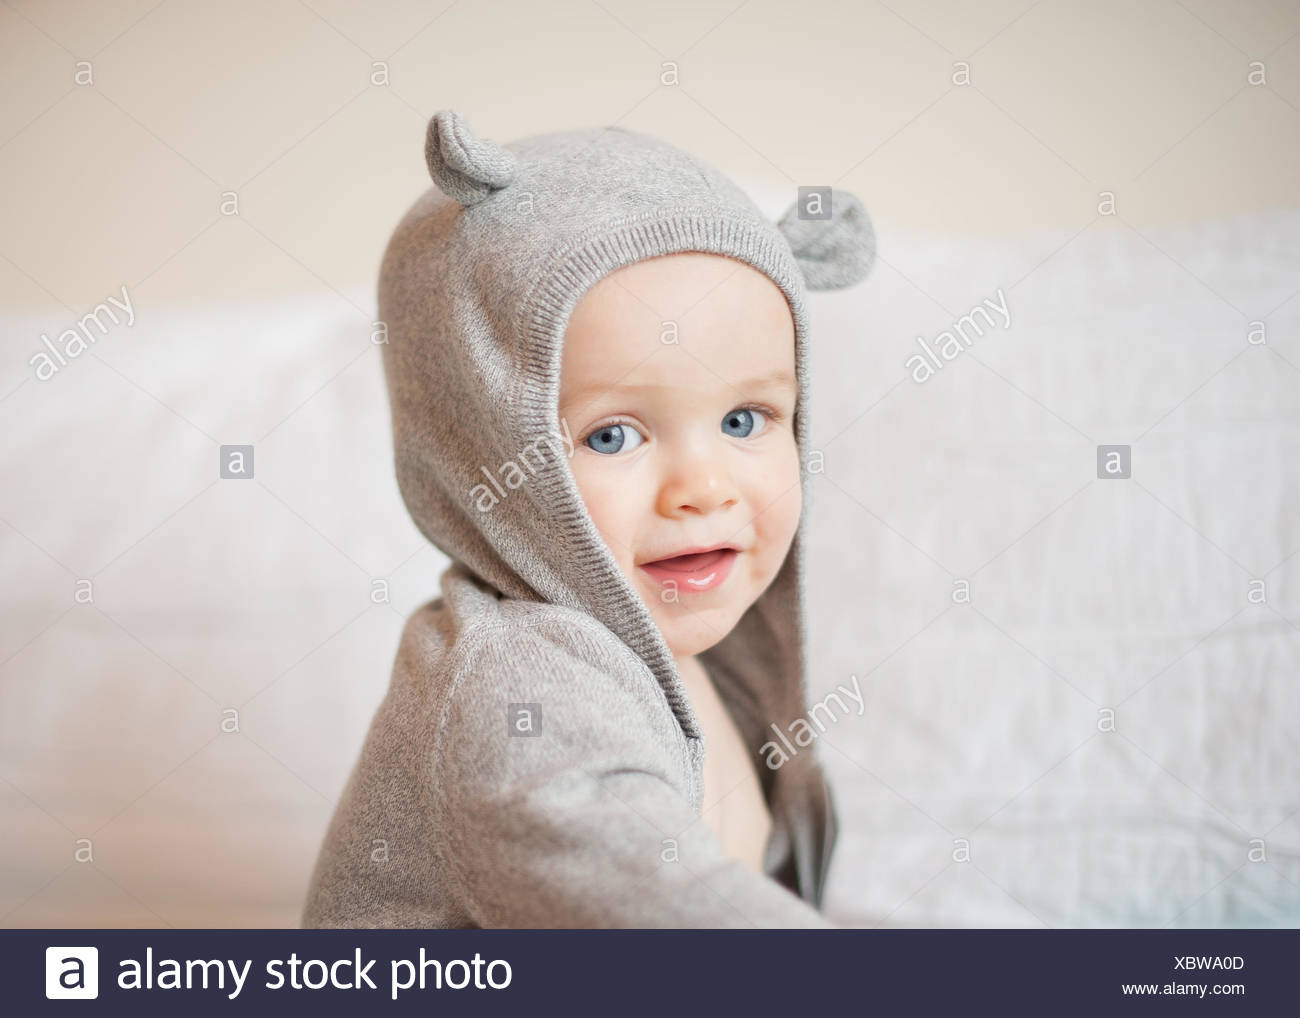 Portrait of boy wearing a hooded top - Stock Image